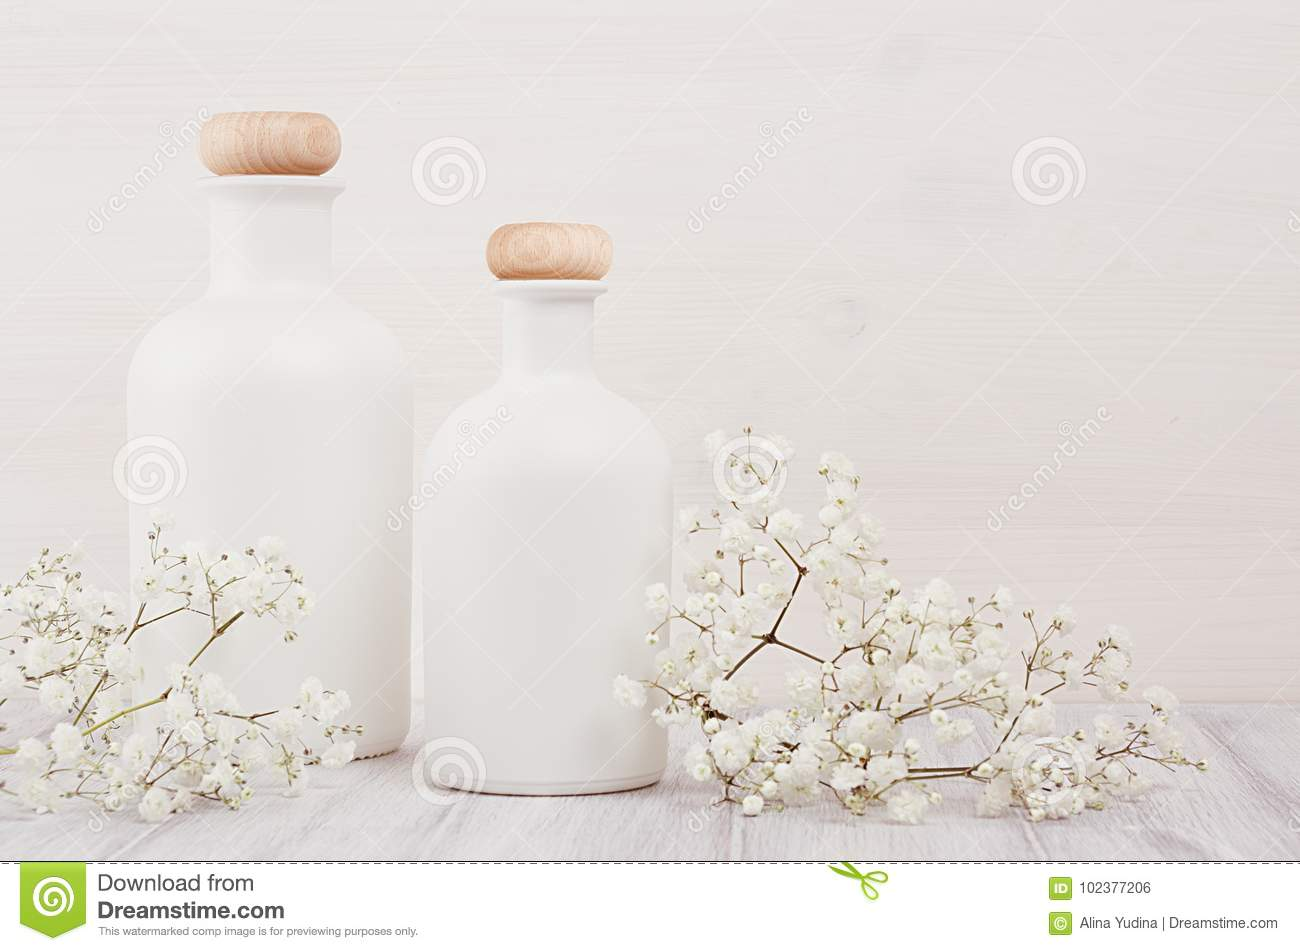 Soft elegant home decor with white bottles and small flowers on white wooden plank for advertising, designers, branding identity,